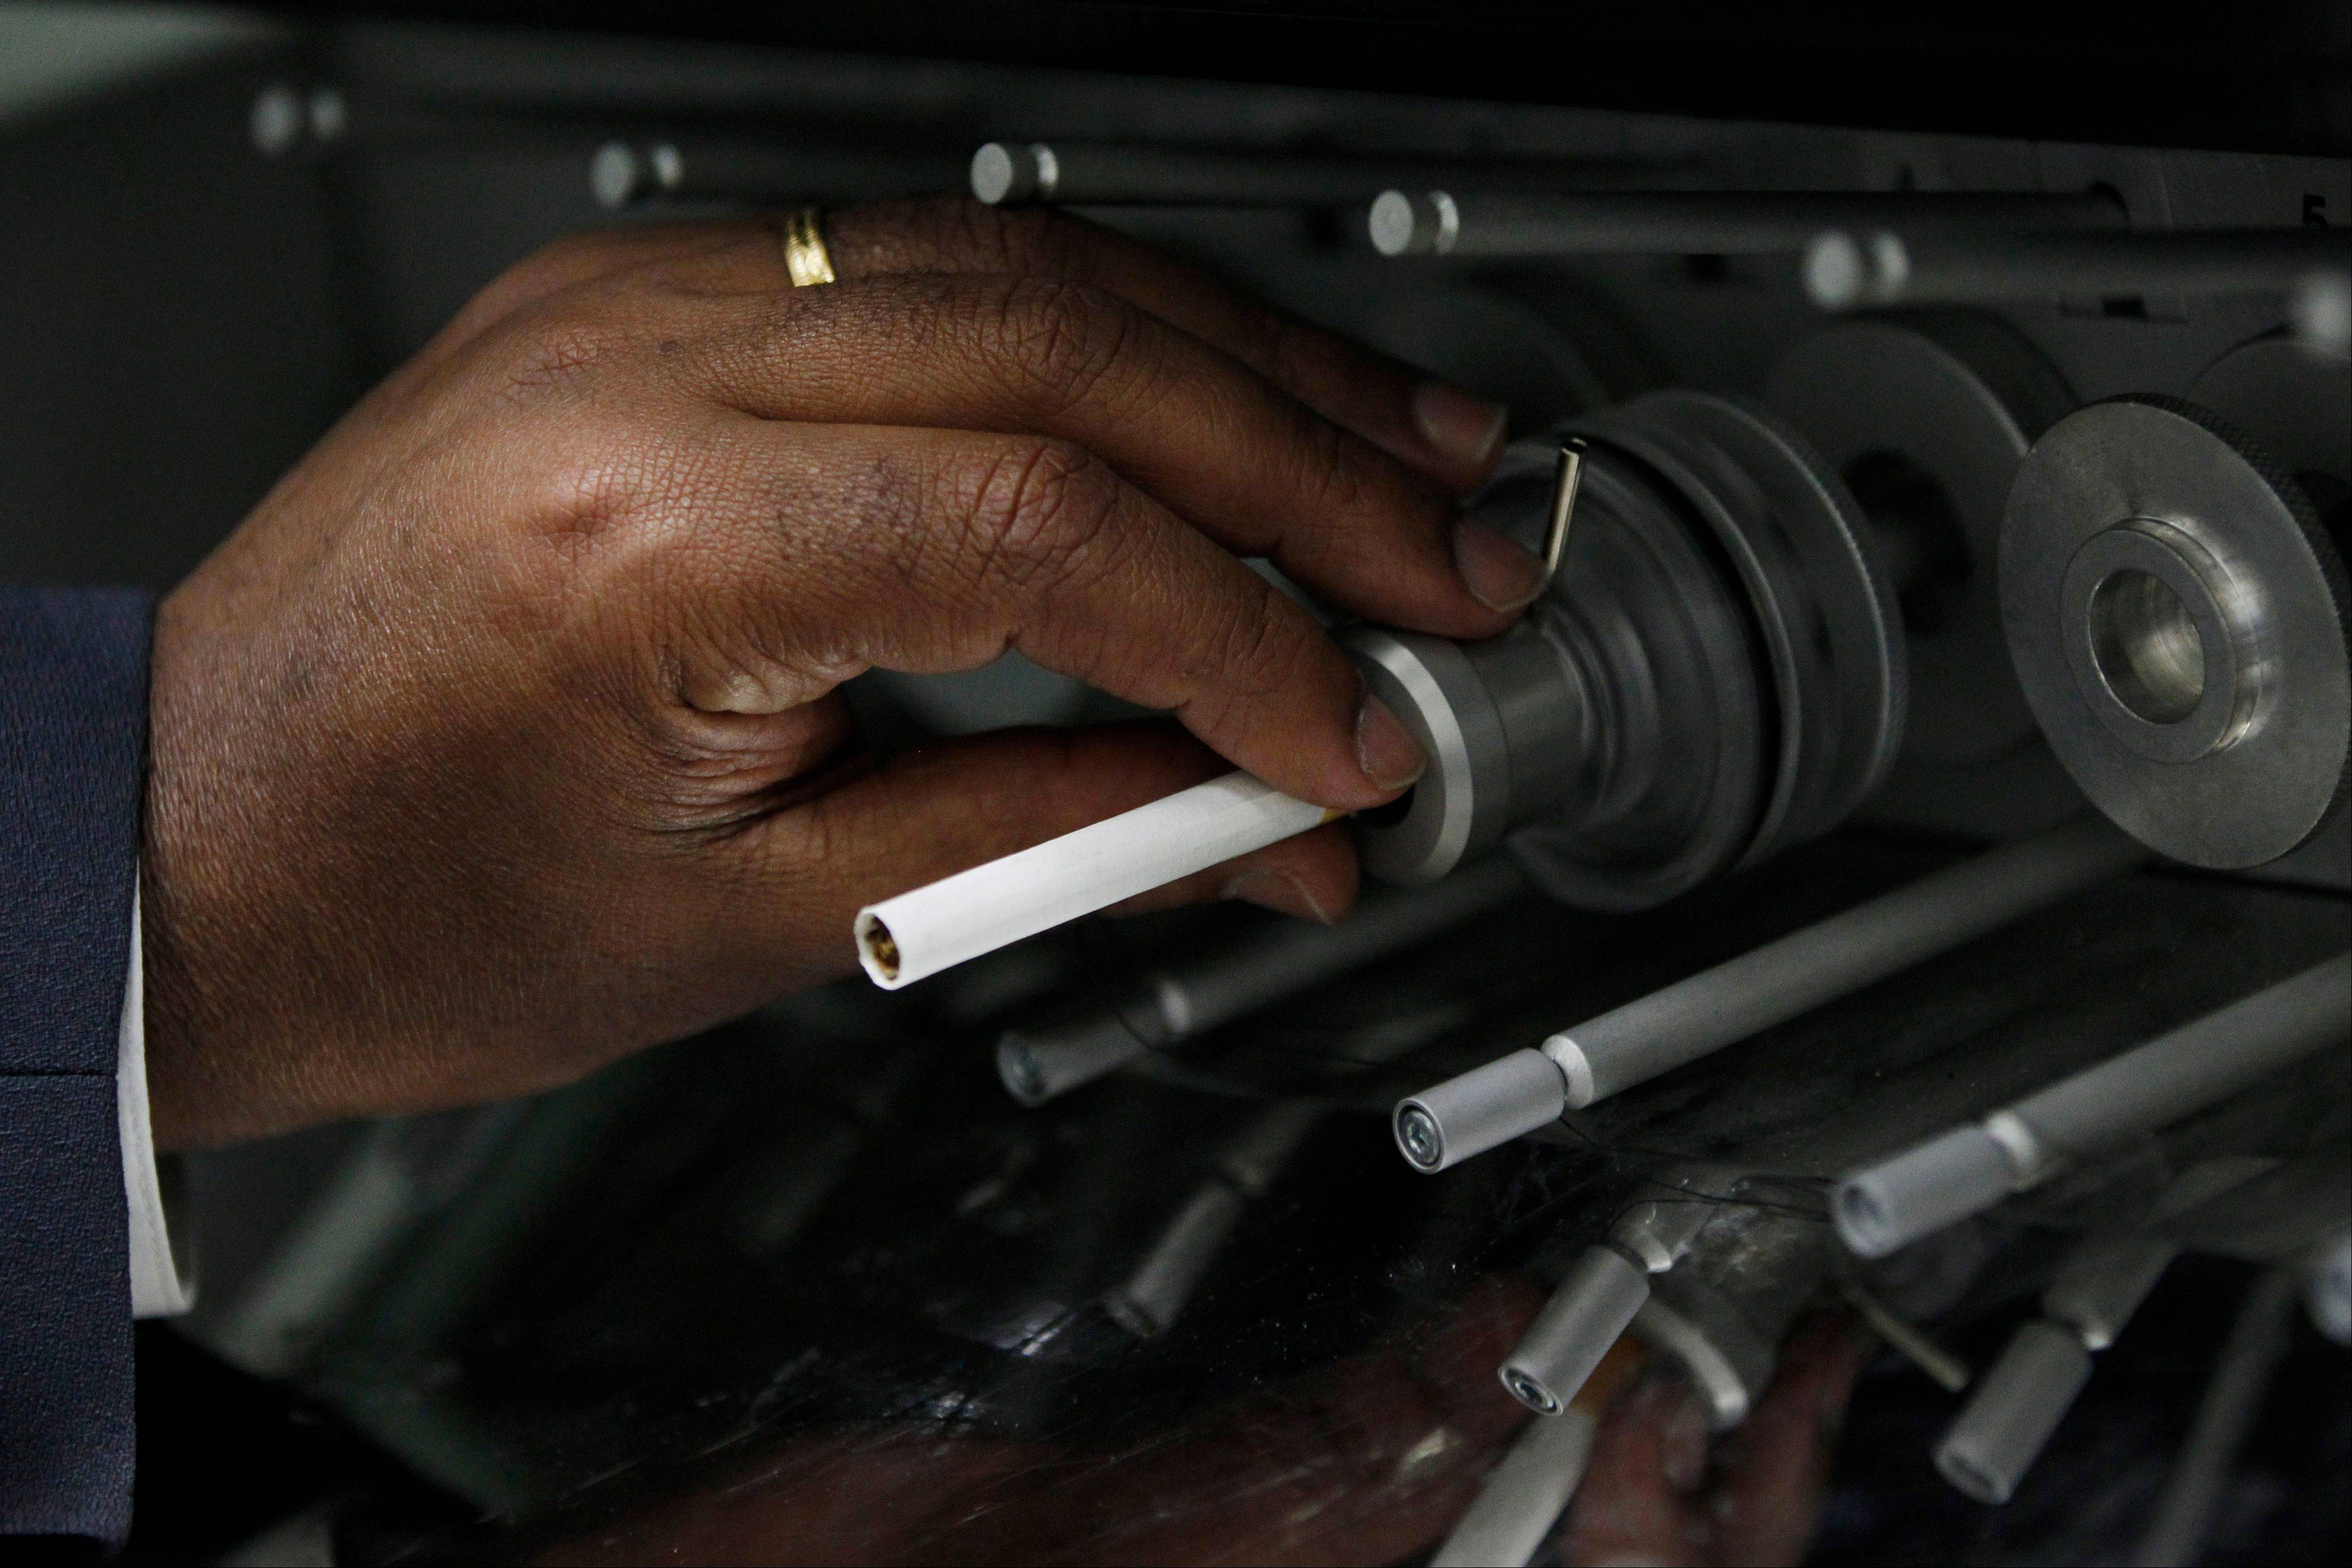 A cigarette is positioned in a mainstream linear 20-port smoking machine at the U.S. Department of Treasury's Alcohol and Tobacco Tax and Trade Bureau laboratory, in Beltsville, Md. The Alcohol and Tobacco Tax and Trade Bureau, which collects taxes on booze and smokes and tells the companies that produce them how to do business, is one example of the specialized government offices threatened by Washington�s current zeal for cost-cutting.